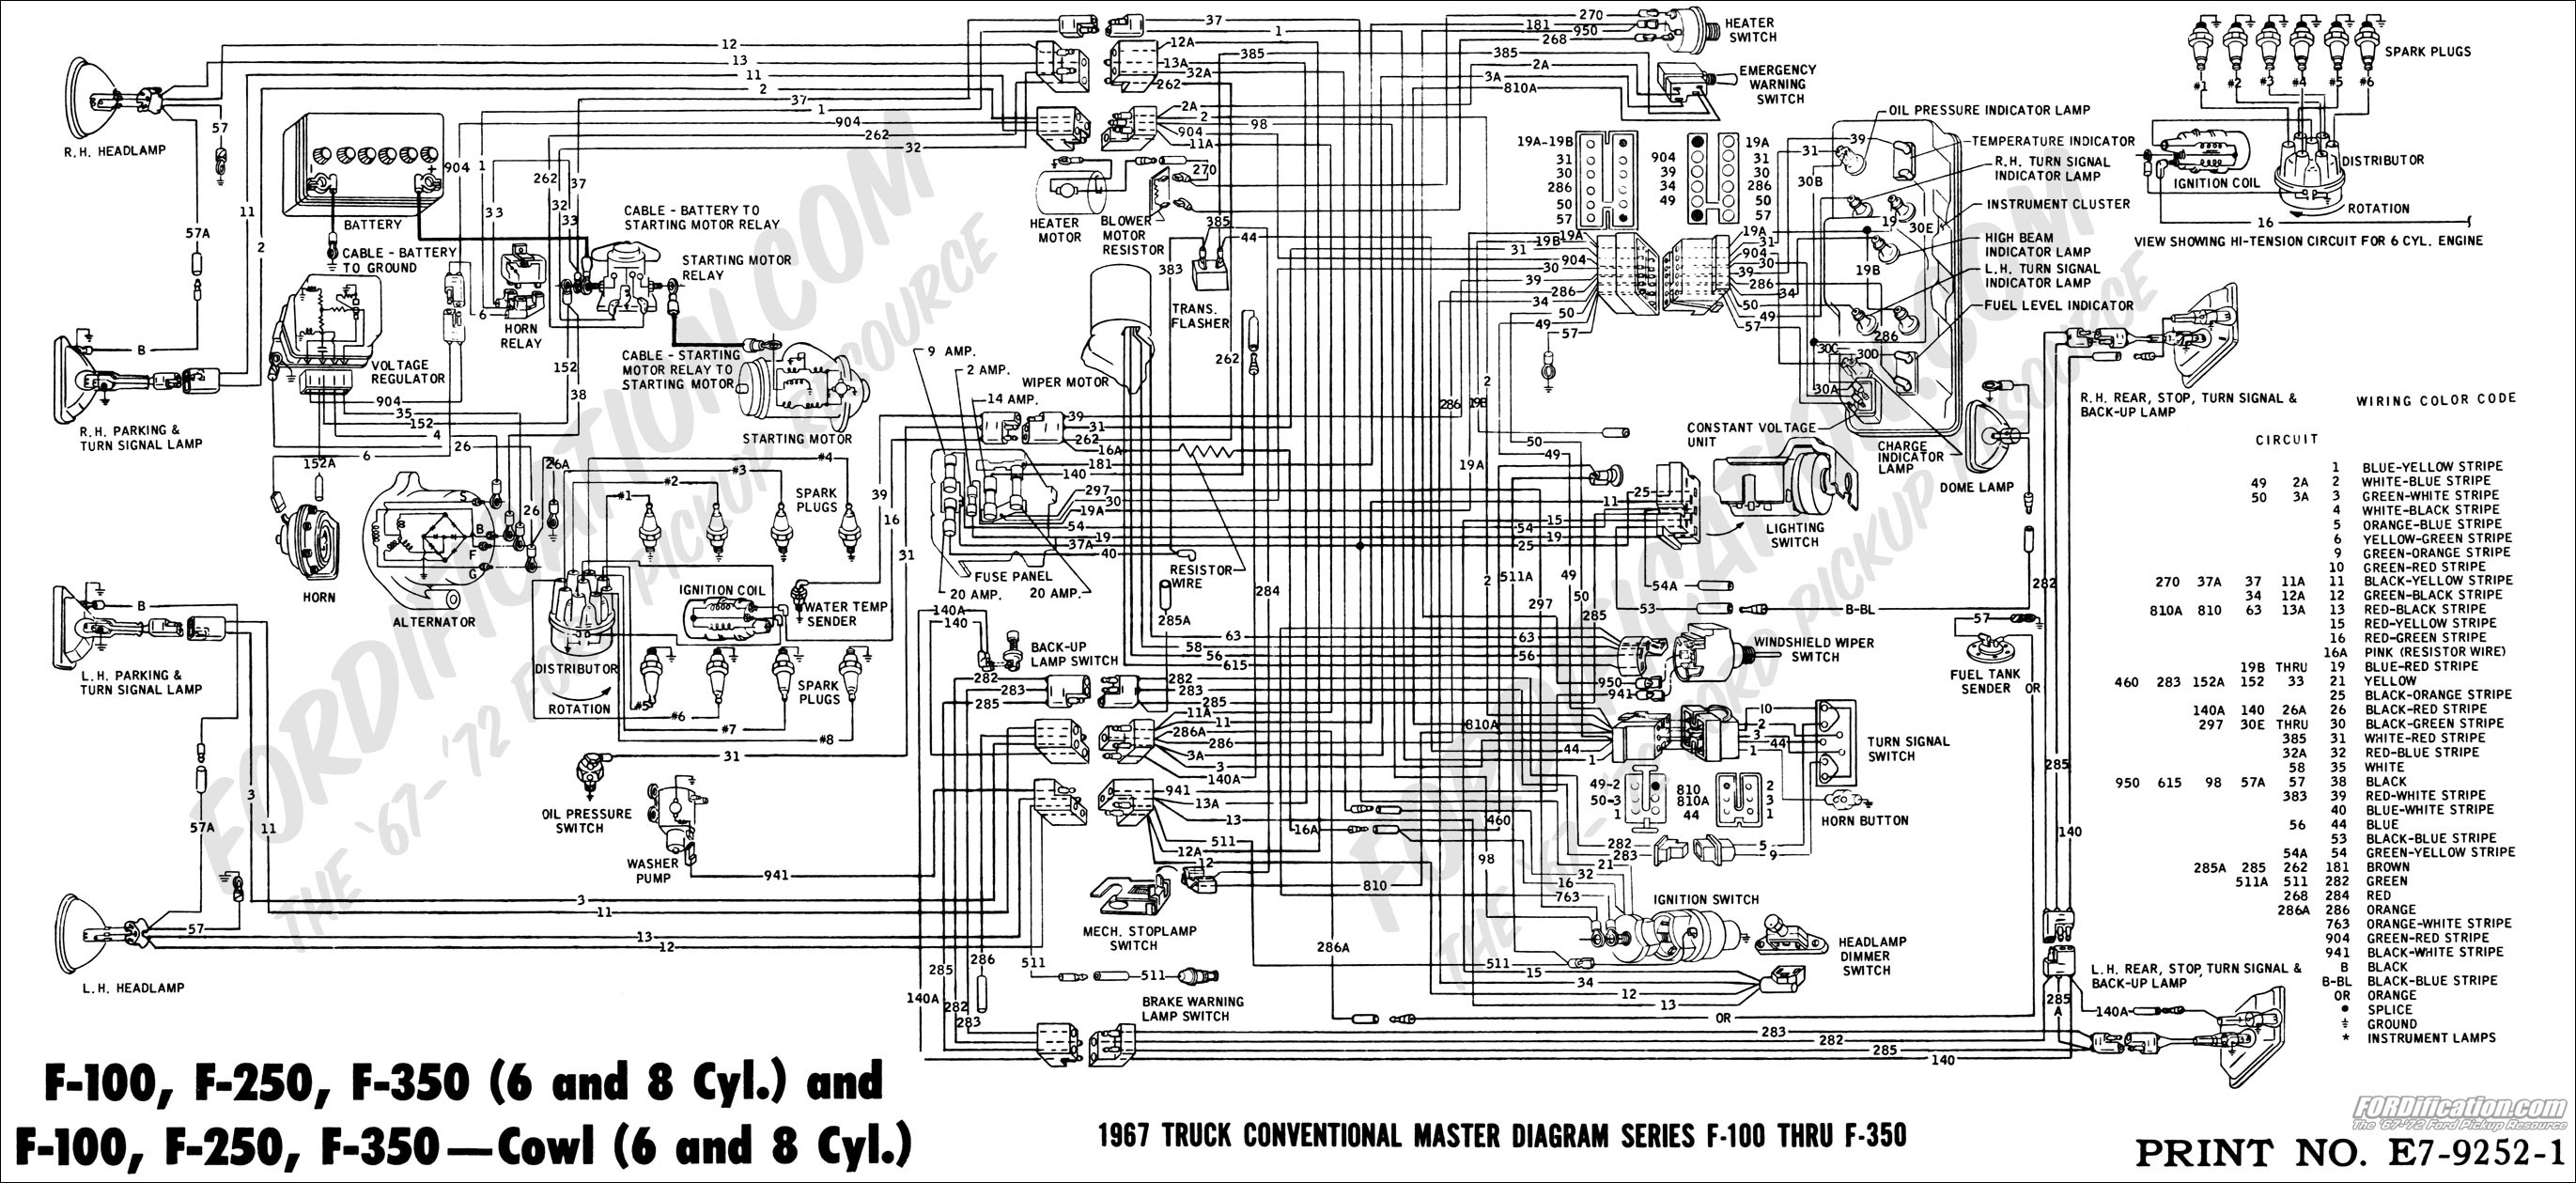 1986 ford F350 Wiring Diagram ford Truck Technical Drawings and Schematics Section H Wiring Of 1986 ford F350 Wiring Diagram